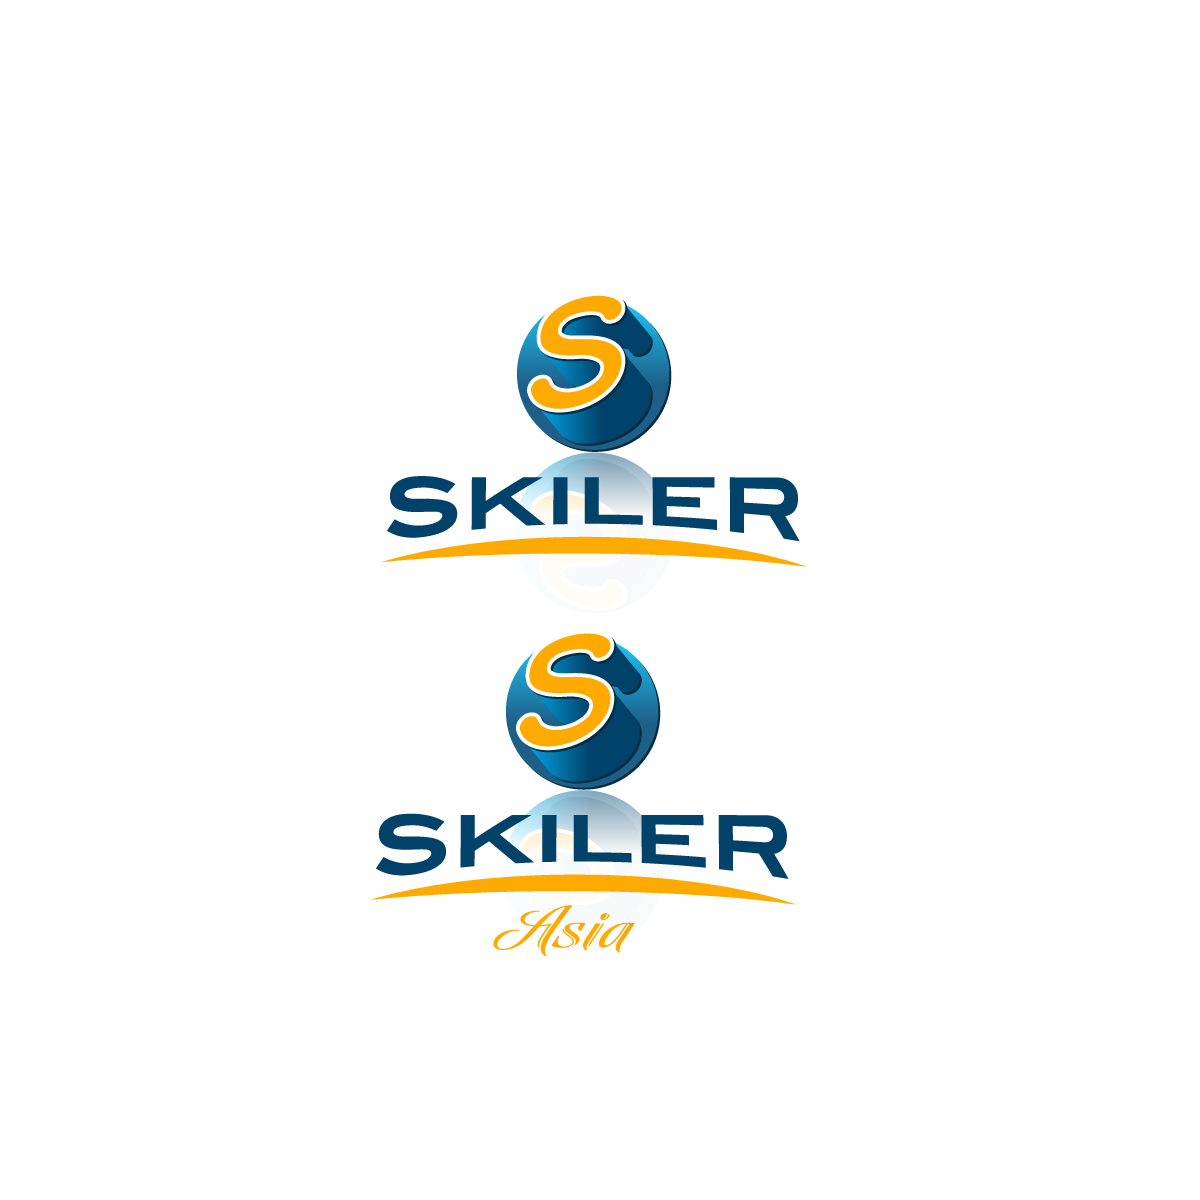 Logo Design by danelav - Entry No. 210 in the Logo Design Contest Artistic Logo Design for Skyler.Asia.